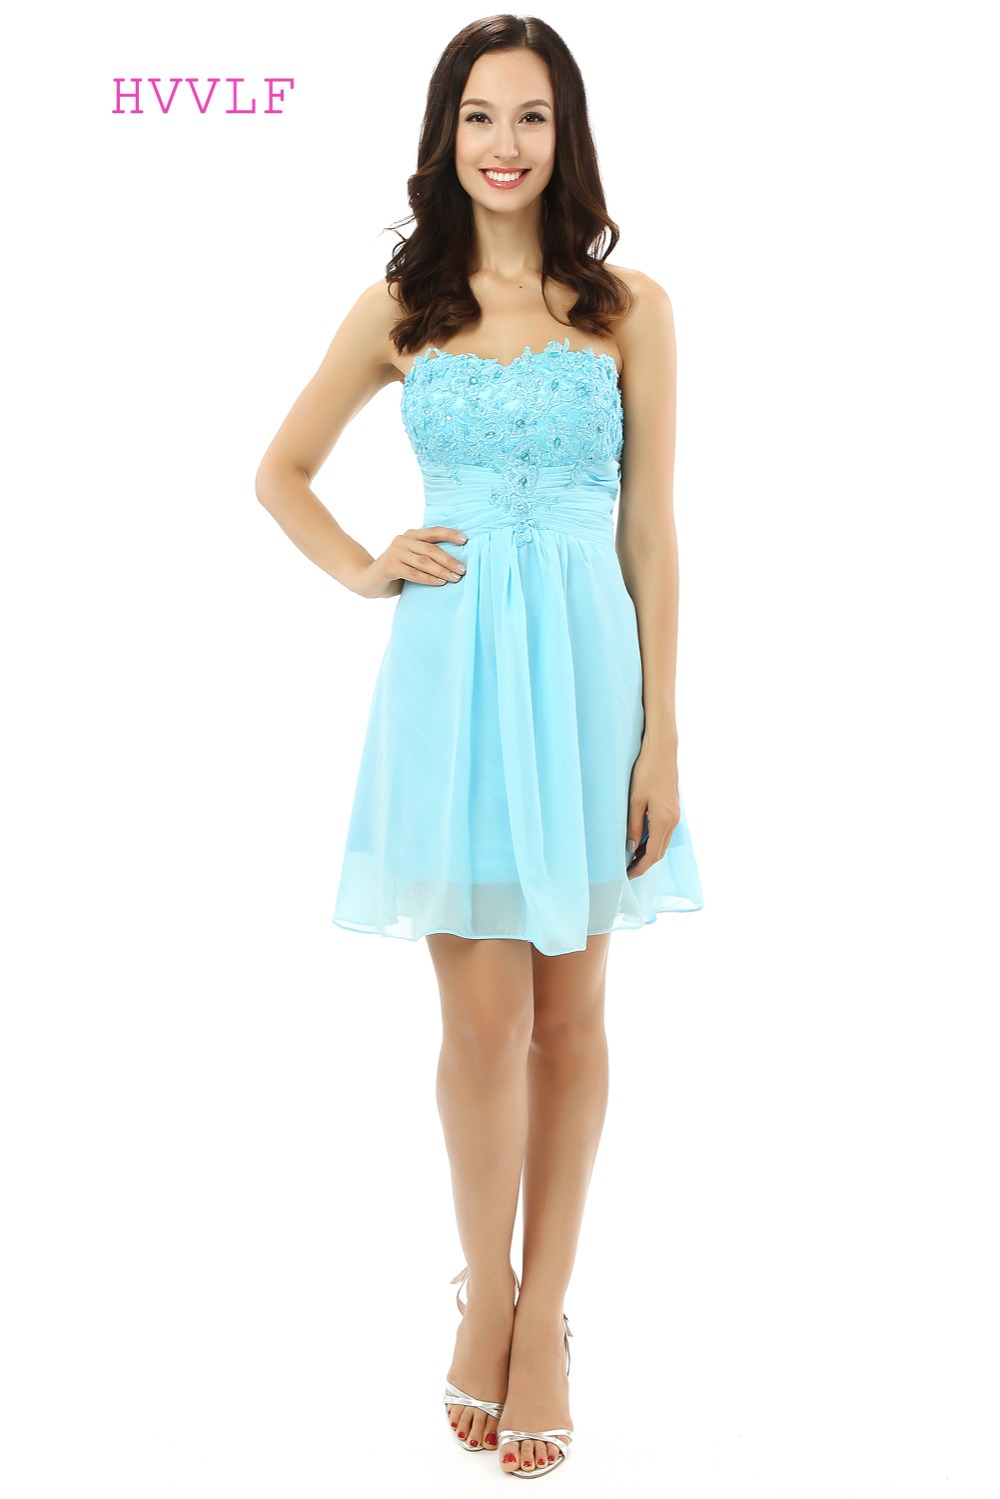 Mint Green Homecoming Dresses A-line Strapless Chiffon Lace Beaded Short Mini Sparkly Sweet 16 Cocktail Dresses 2019